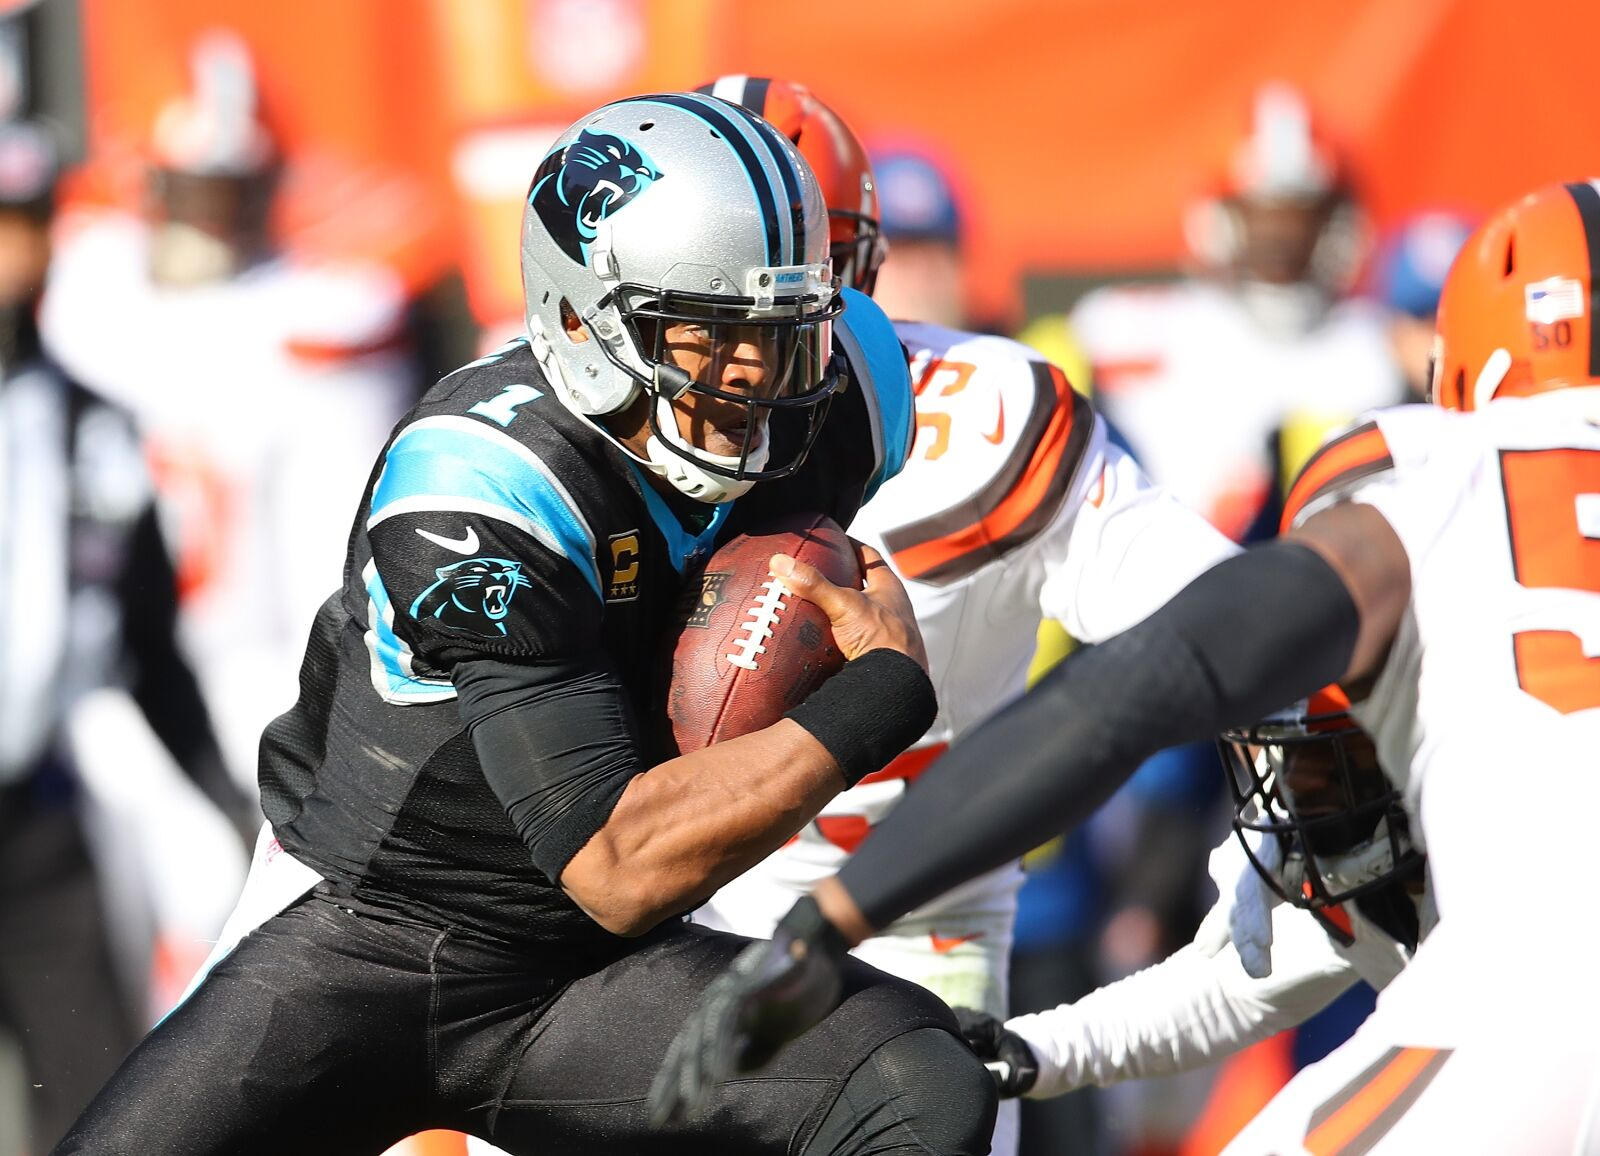 Cam Newton motivated and focused for Monday Night lights